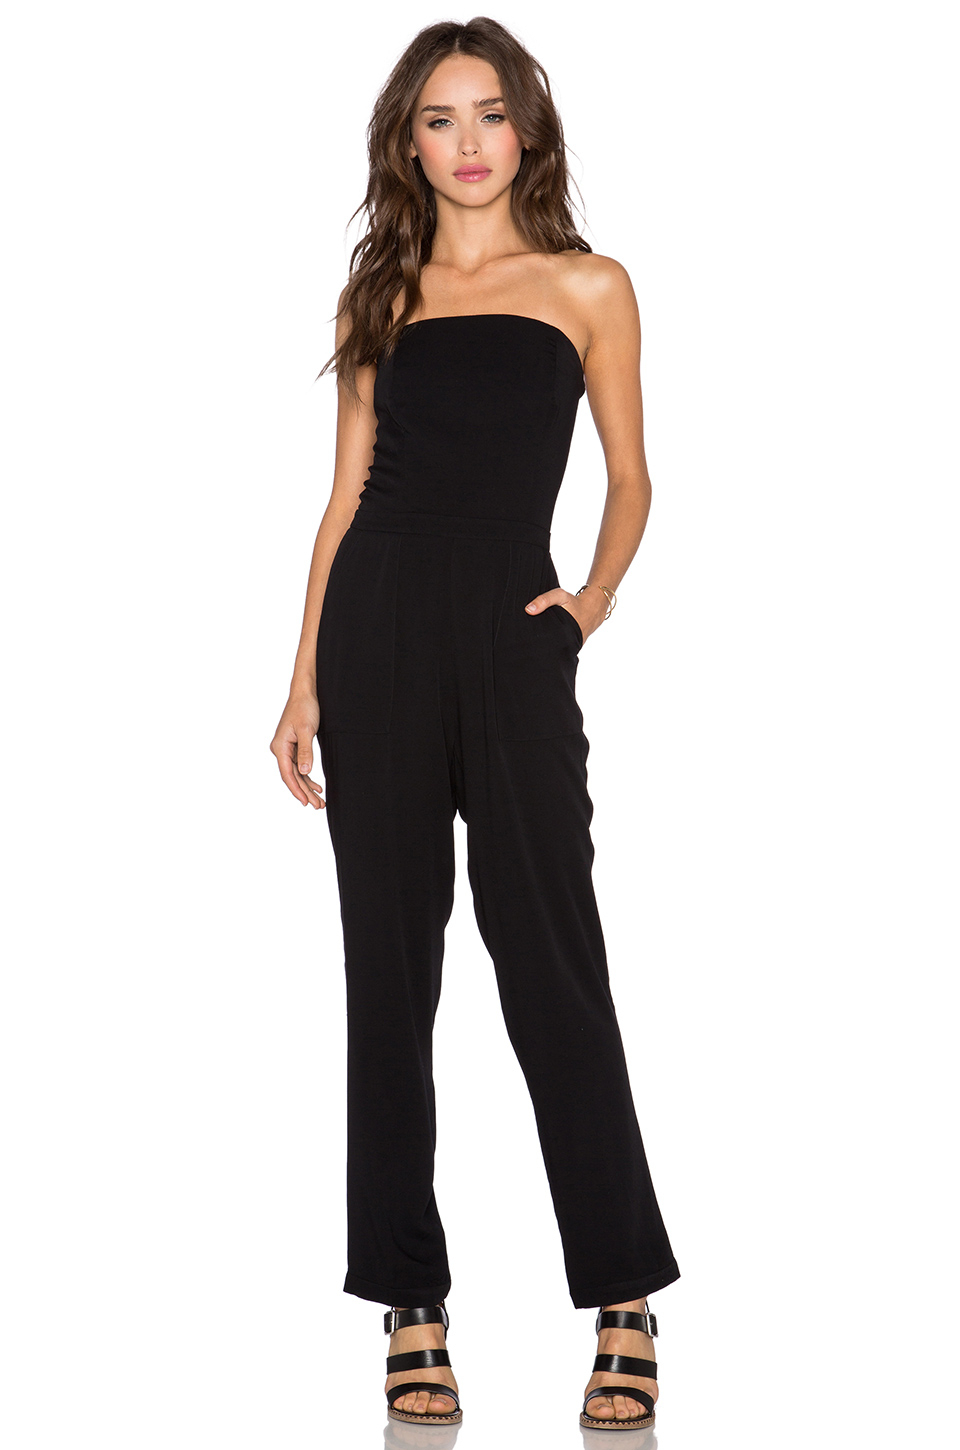 With shoulder-baring silhouette and a curve-loving bodice, this jumpsuit is an effortlessly elegant style for the dinner date or a night on the town.